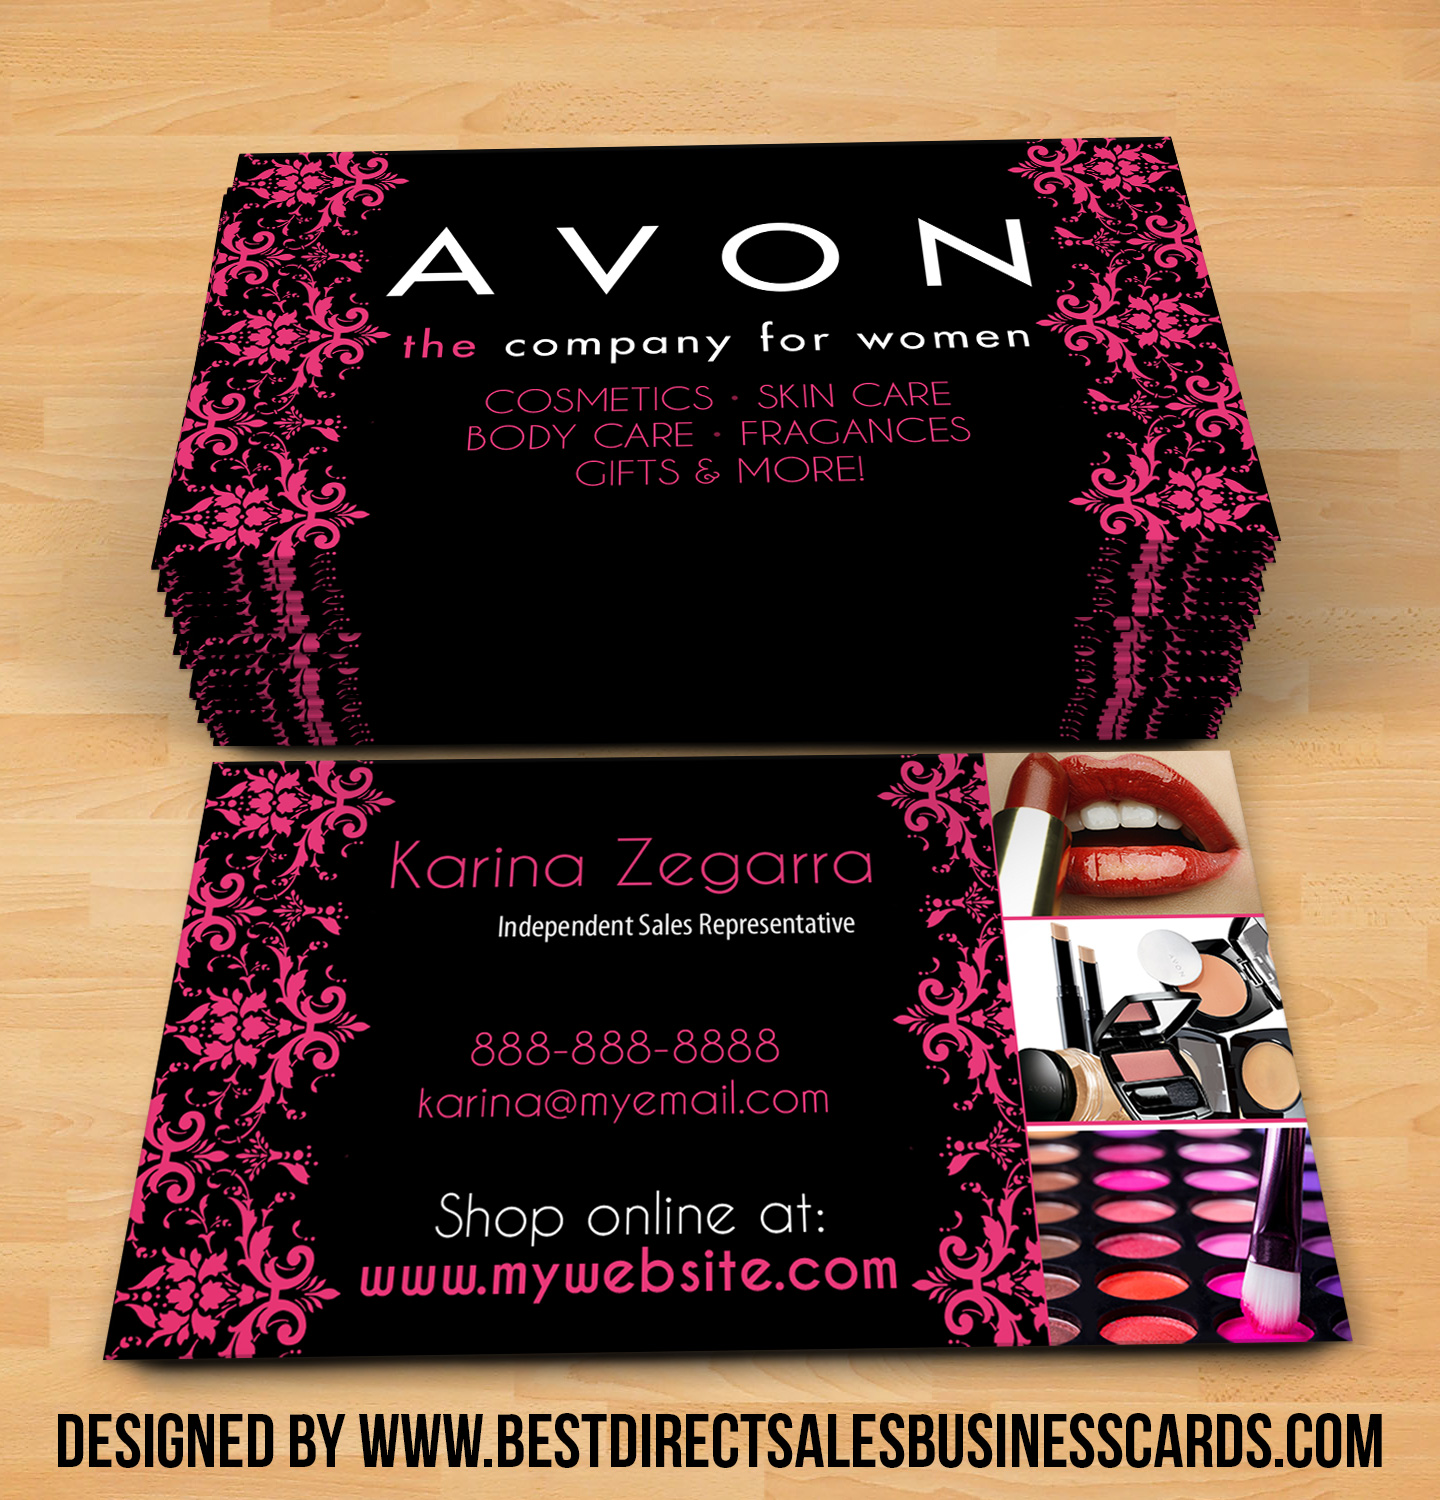 order younique business cards - Younique Business Cards